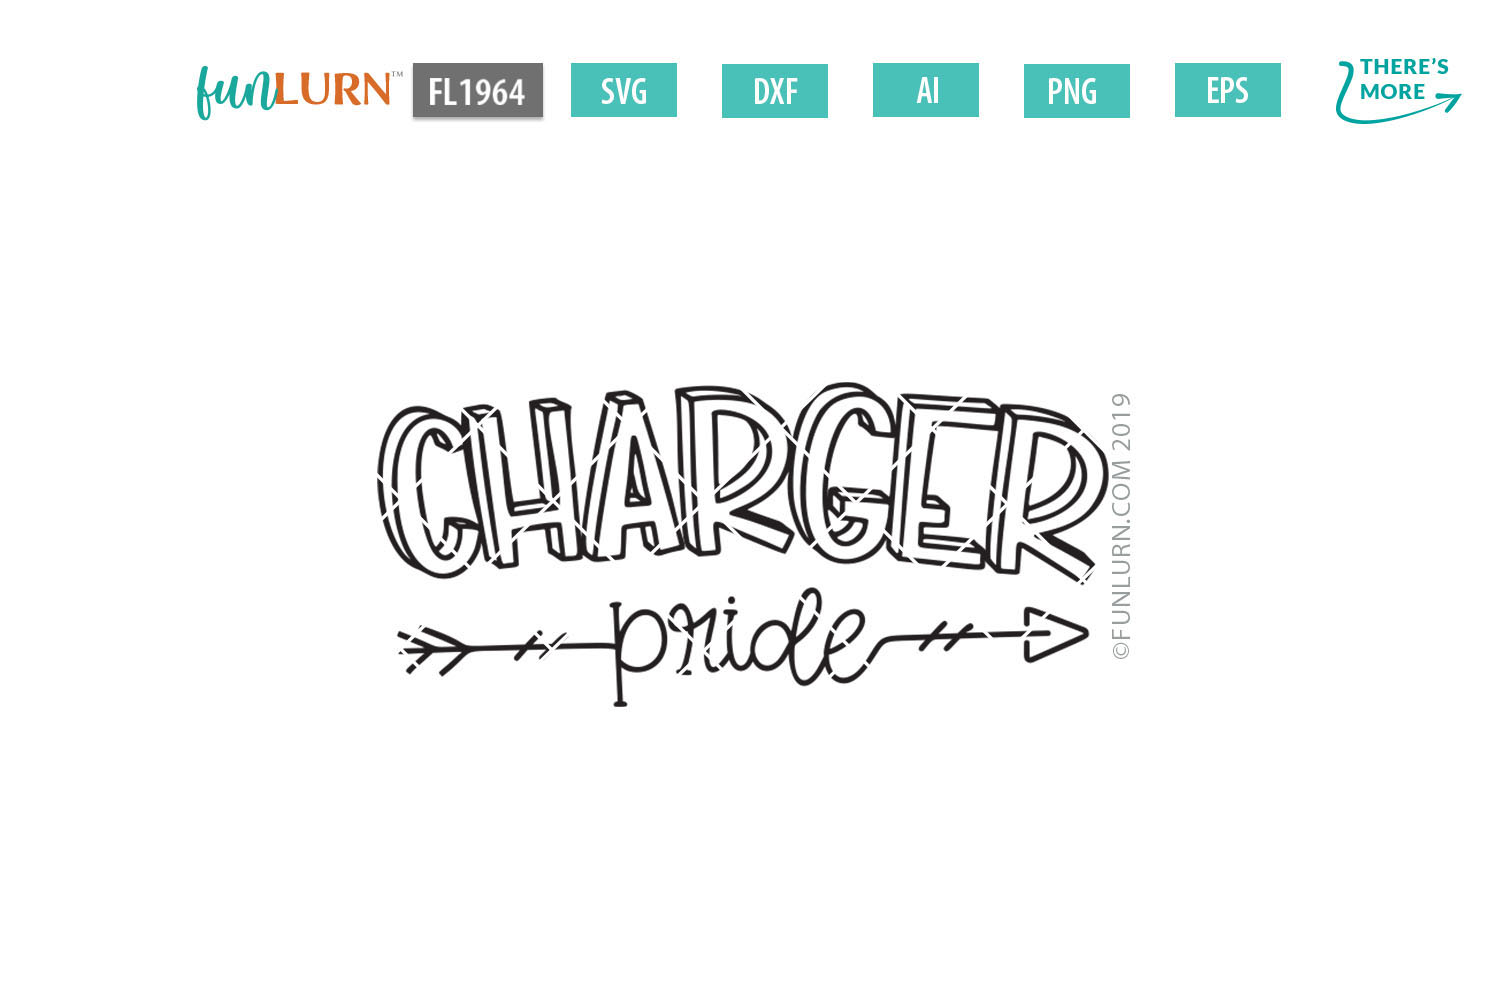 Charger Pride Team SVG Cut File example image 2